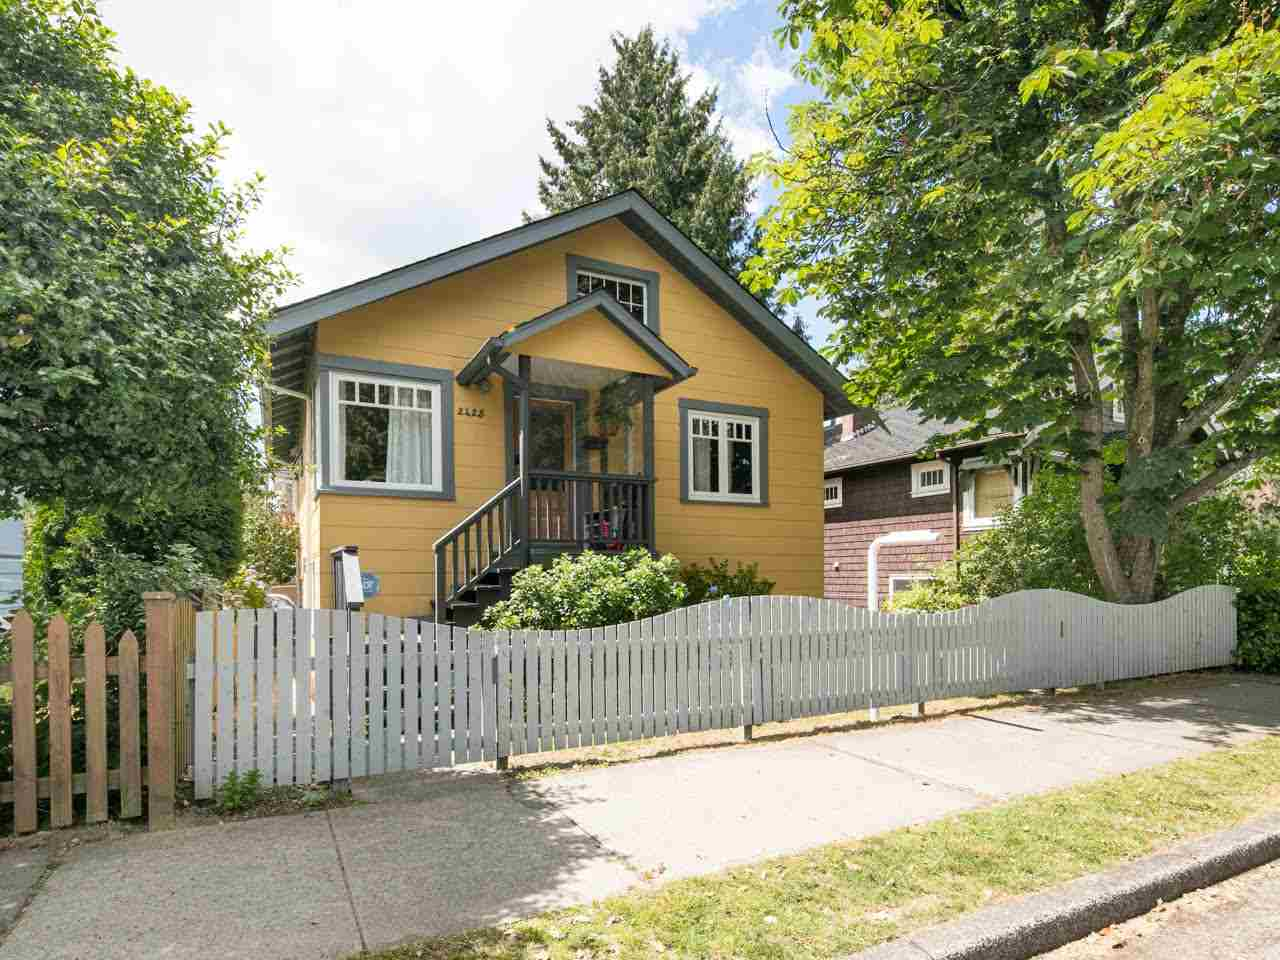 Photo 1: 2425 TRUTCH Street in Vancouver: Kitsilano House for sale (Vancouver West)  : MLS(r) # R2079999